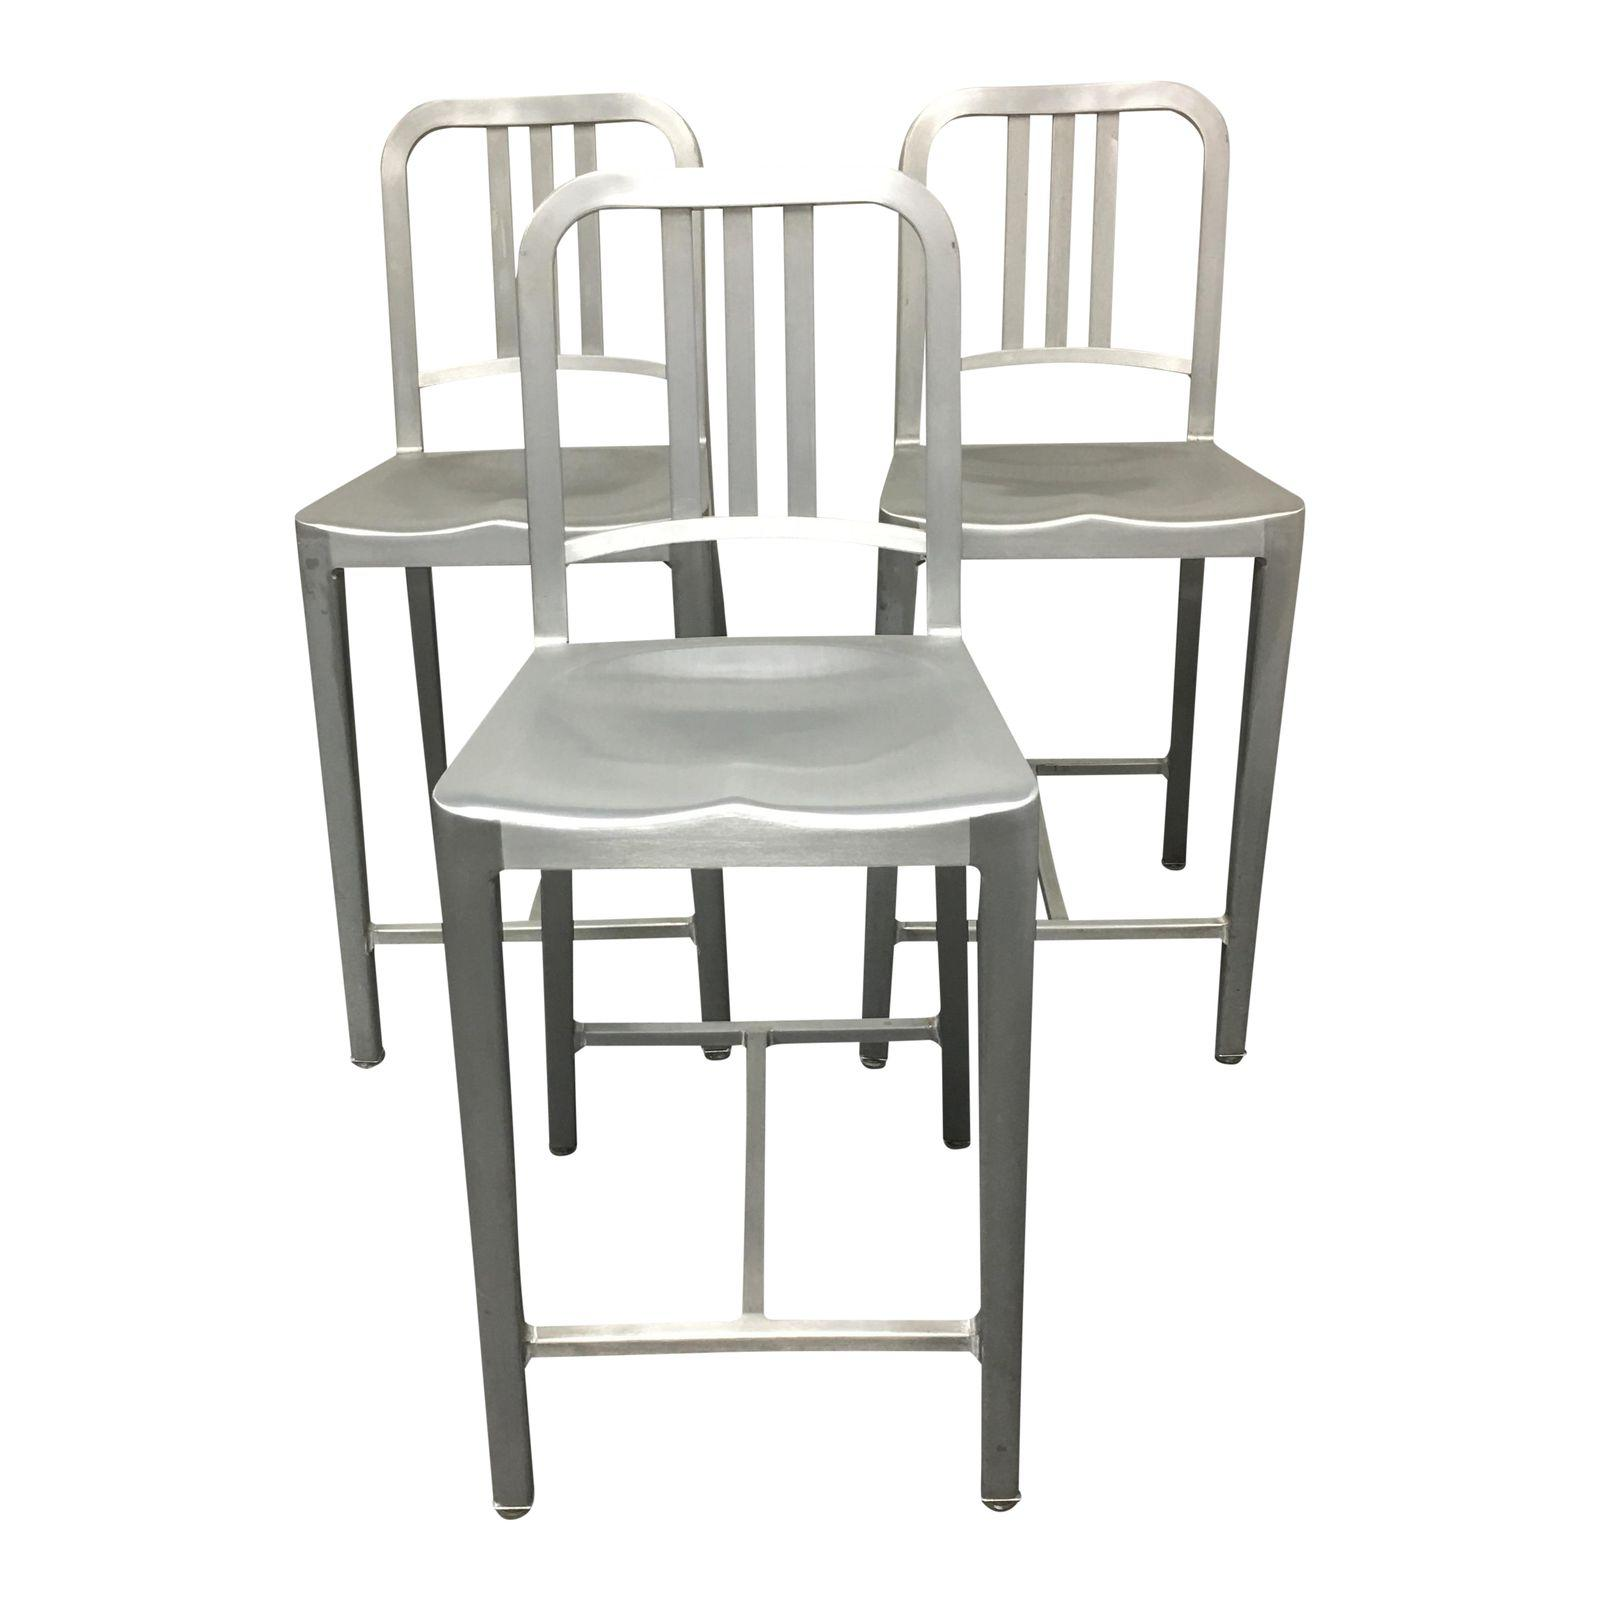 Awesome Set Of Three Emeco Aluminum Counter Stools From Dwr Caraccident5 Cool Chair Designs And Ideas Caraccident5Info